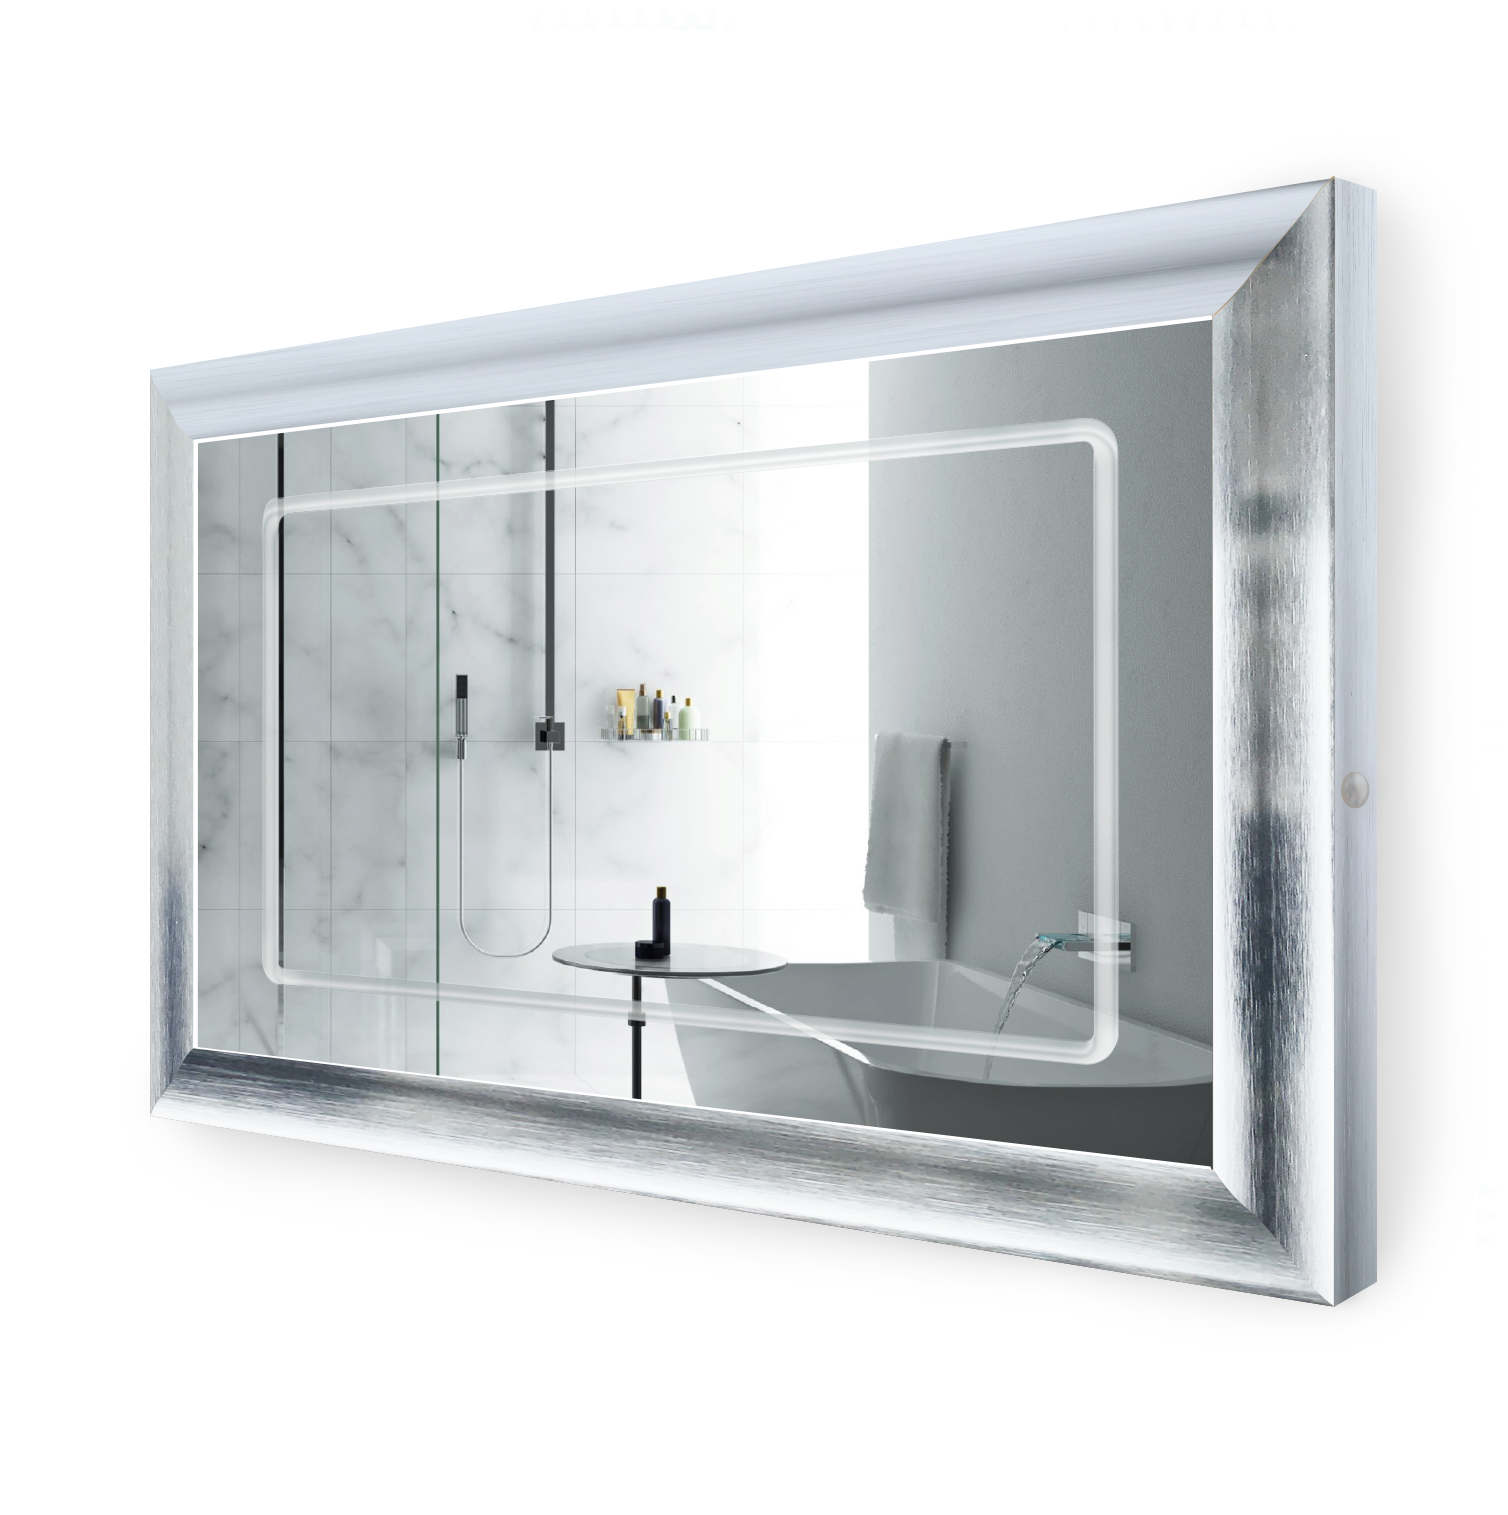 Led Lighted 48 Inch X 30 Bathroom Silver Frame Mirror With Defogger